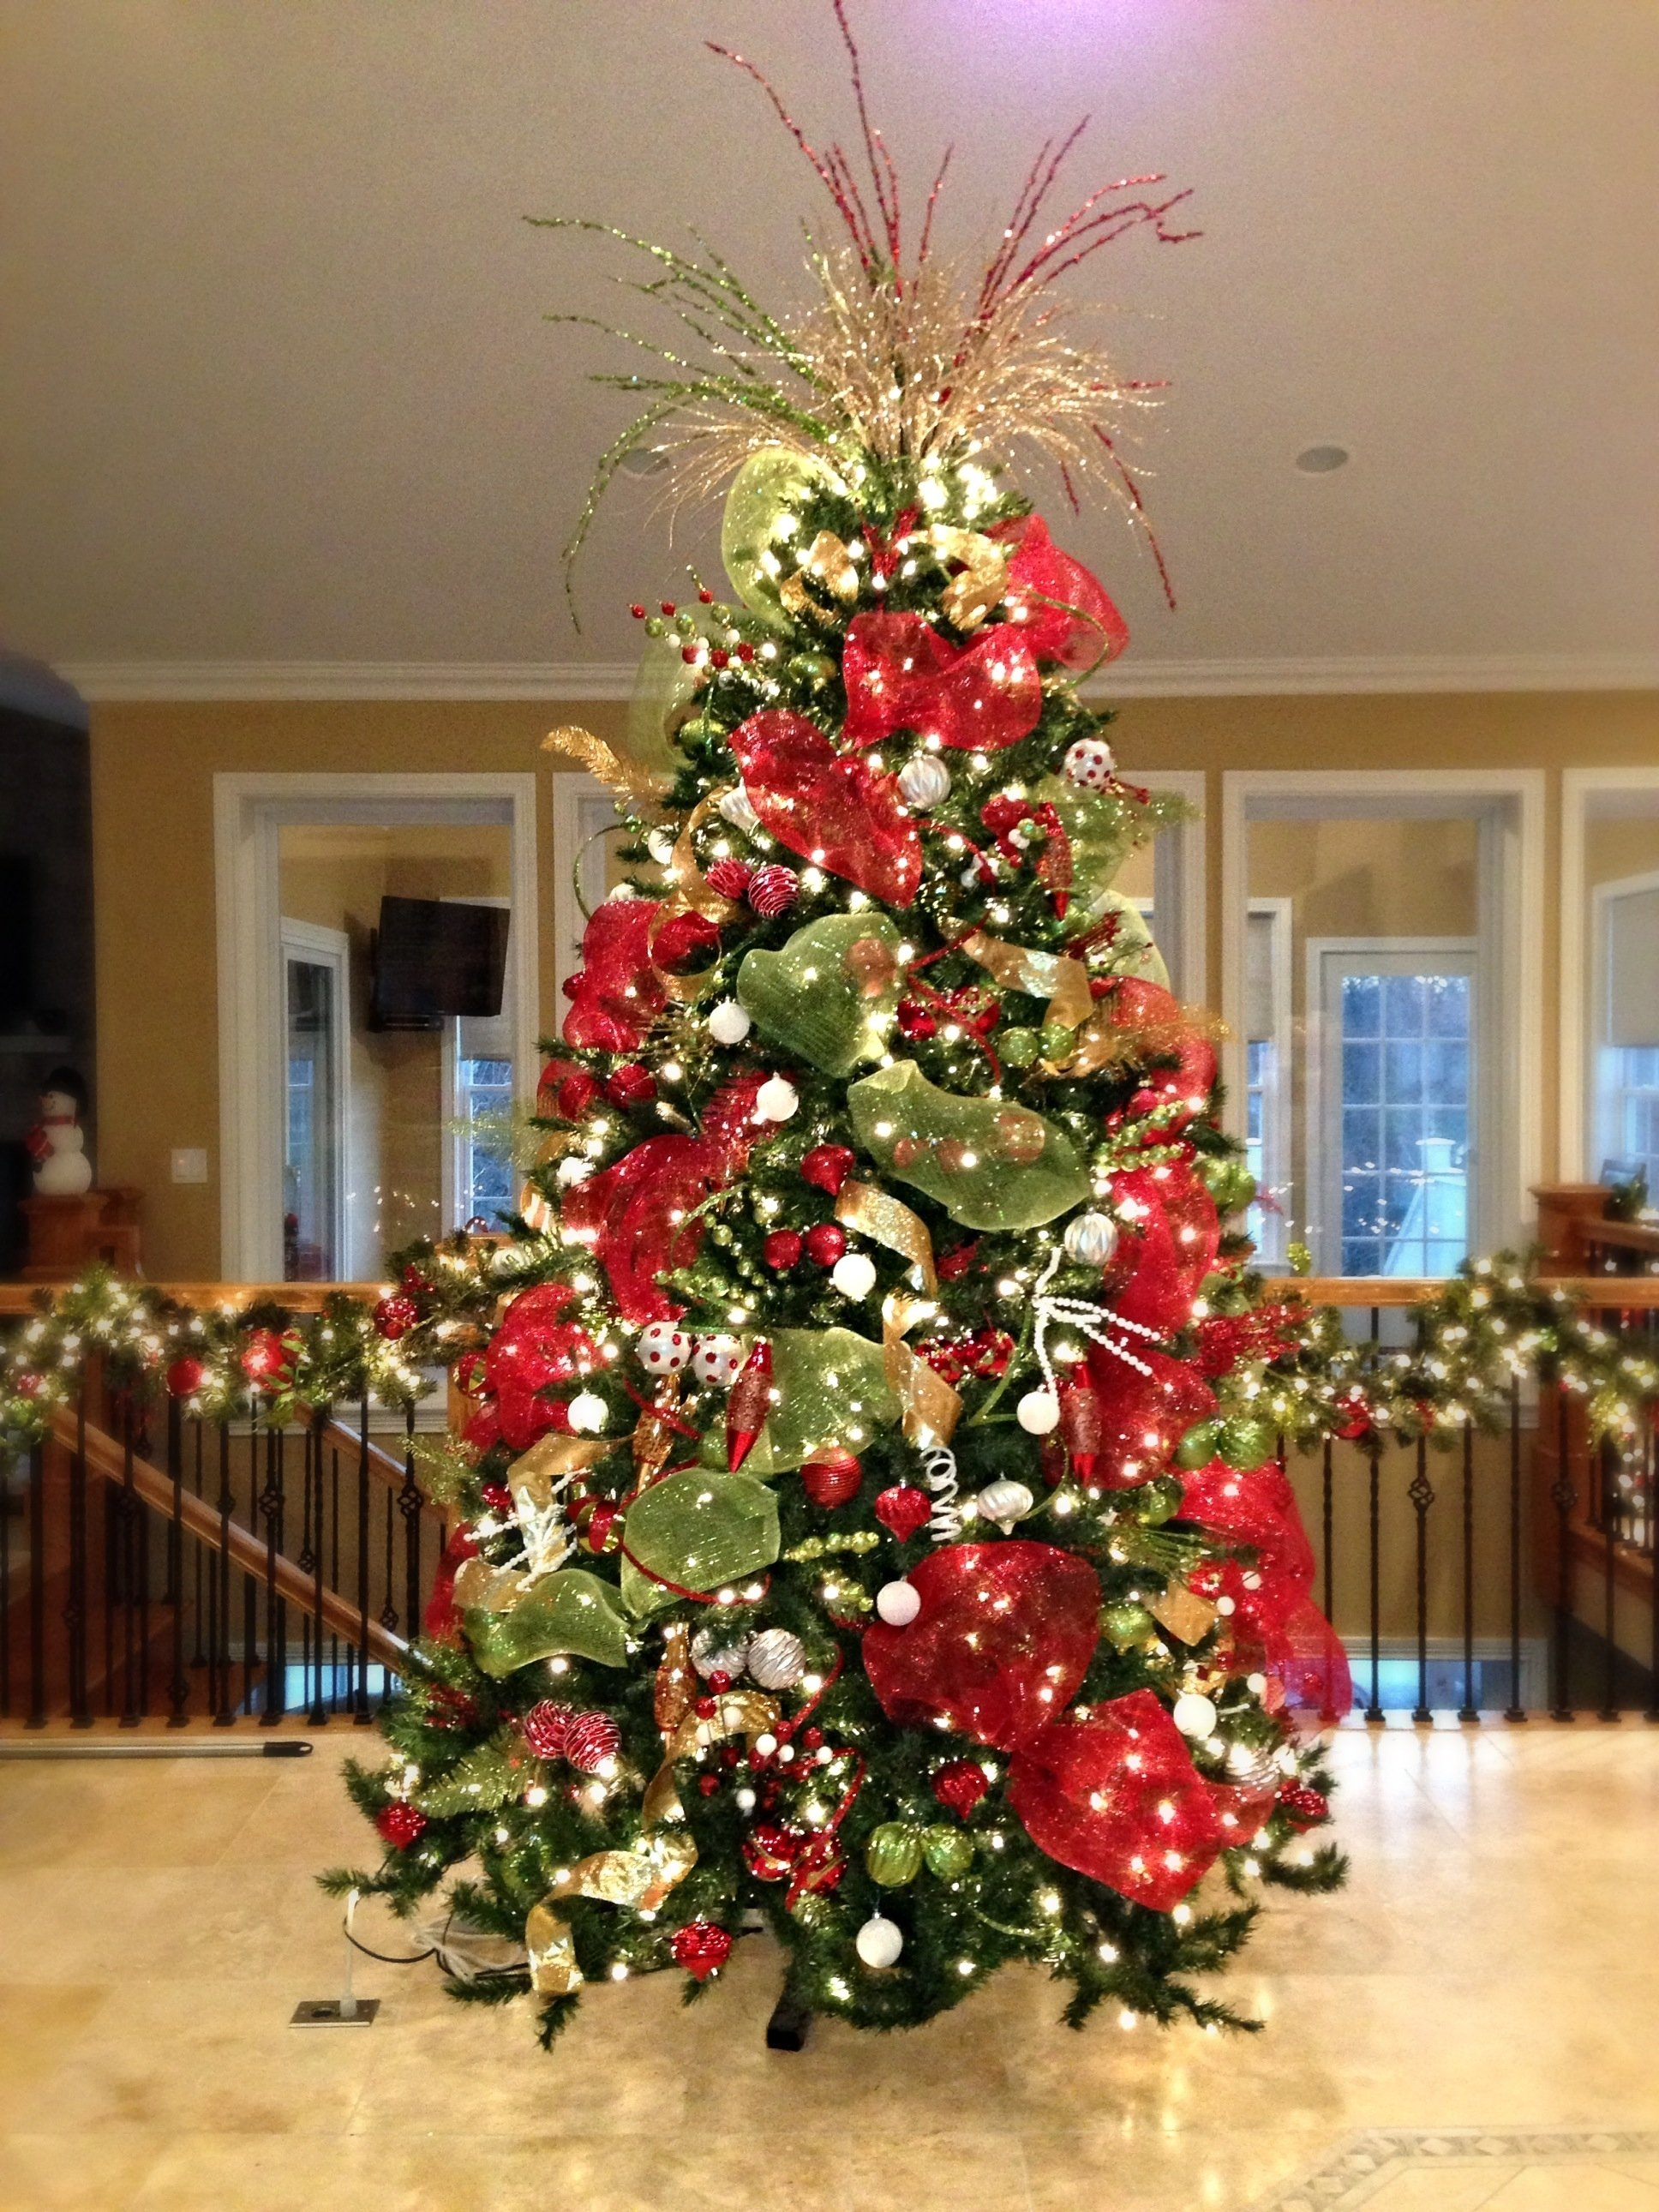 10 Amazing Red And Gold Christmas Tree Decorating Ideas red white and green christmas tree substitute the white with white 1 2021